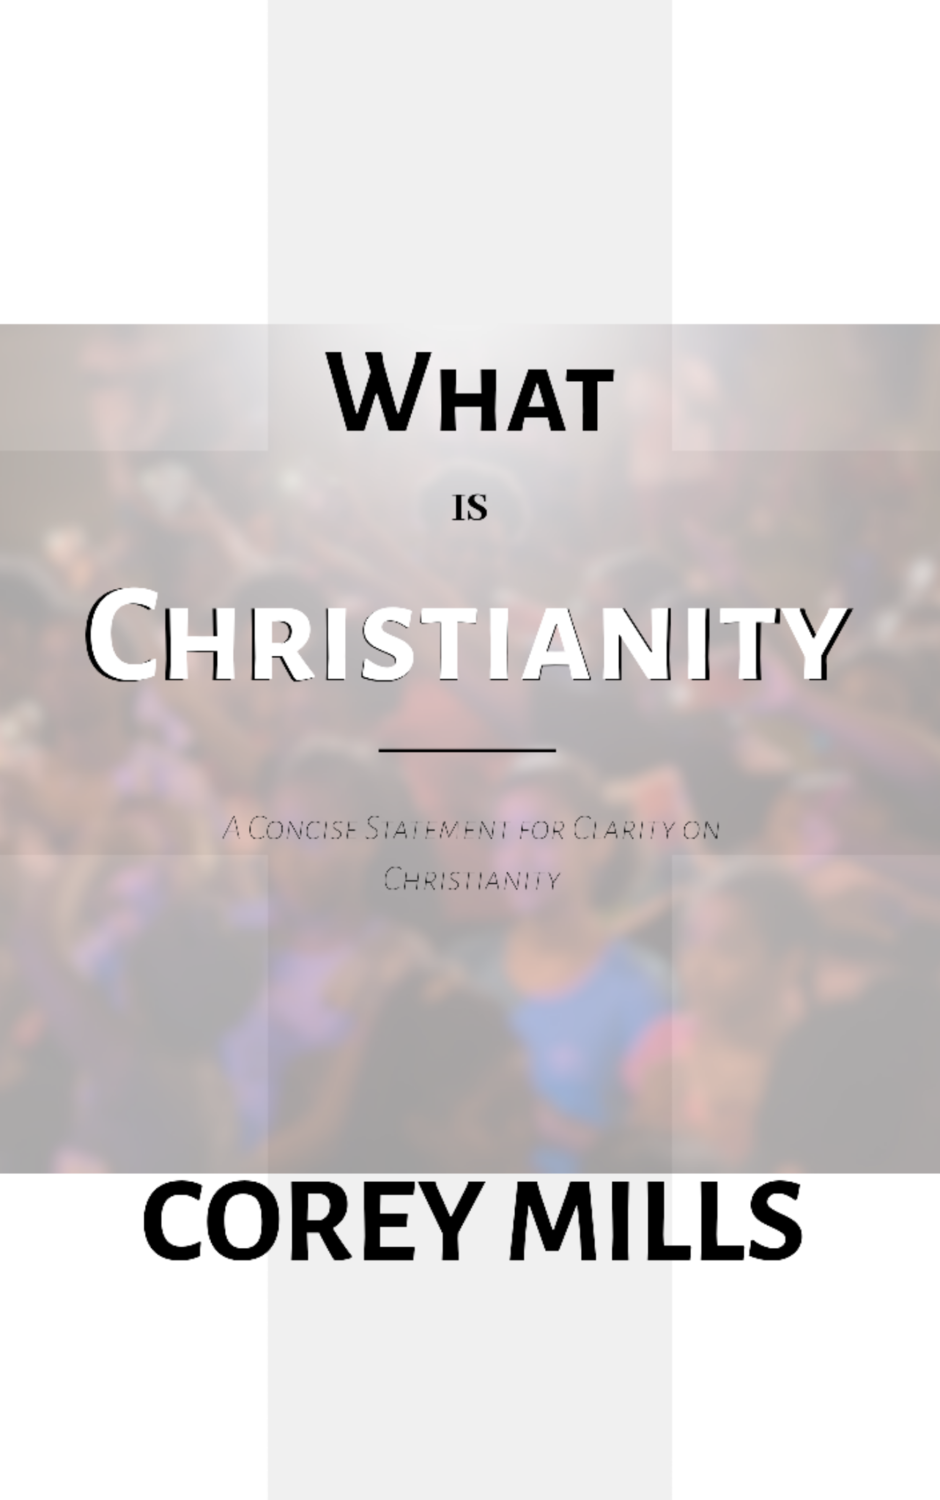 What is Christianity: A Concise Statement for Clarity on Christianity